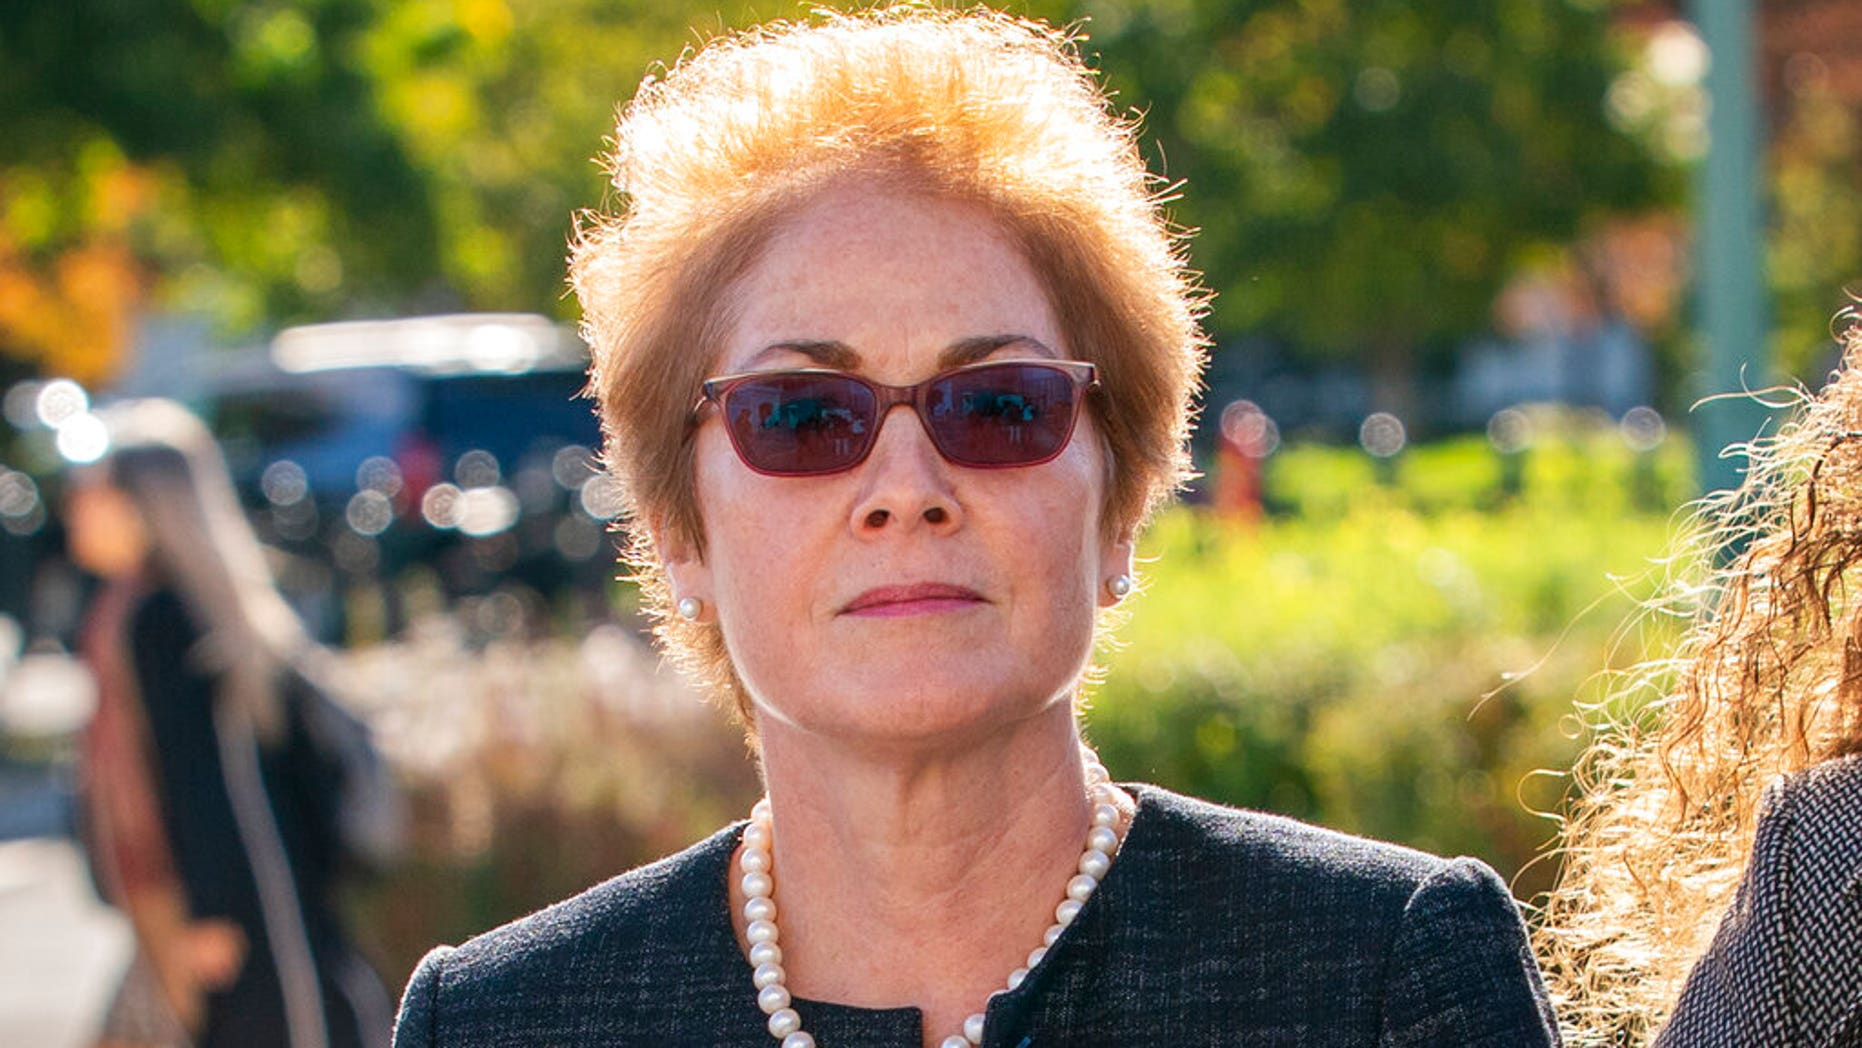 FILE - In this Oct. 11, 2019, record photo, former U.S. envoy to Ukraine Marie Yovanovitch, arrives on Capitol Hill in Washington. (AP Photo/J. Scott Applewhite, File)